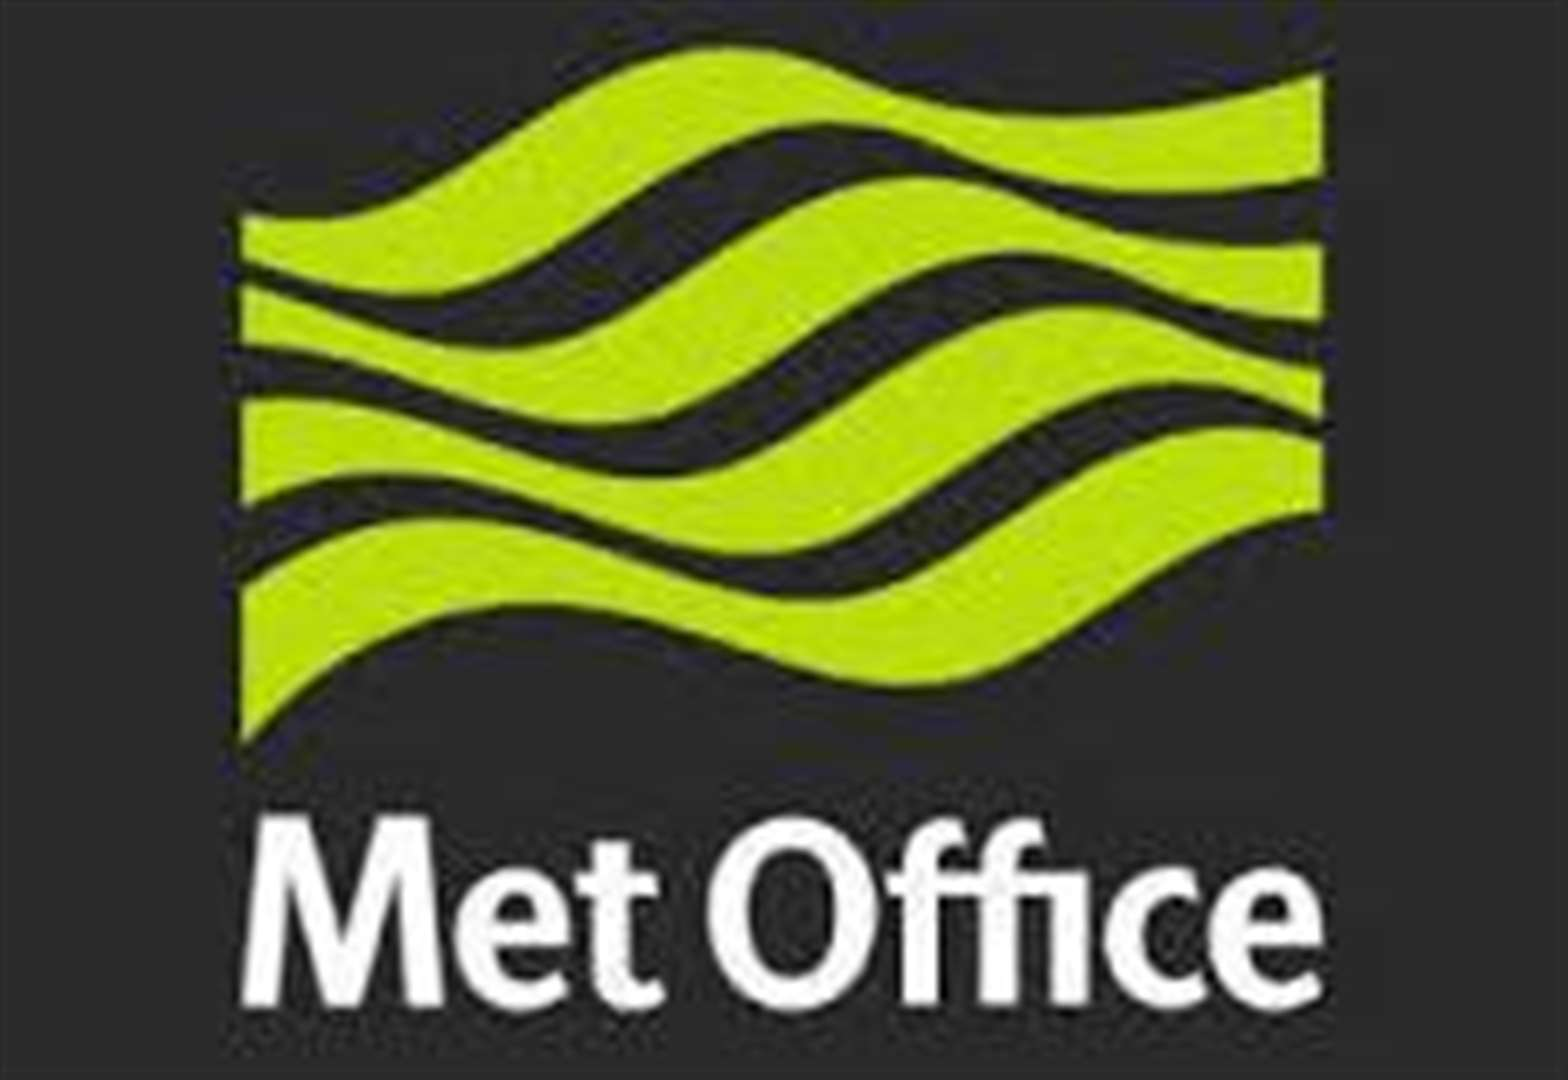 Met Office issues warning for strong winds